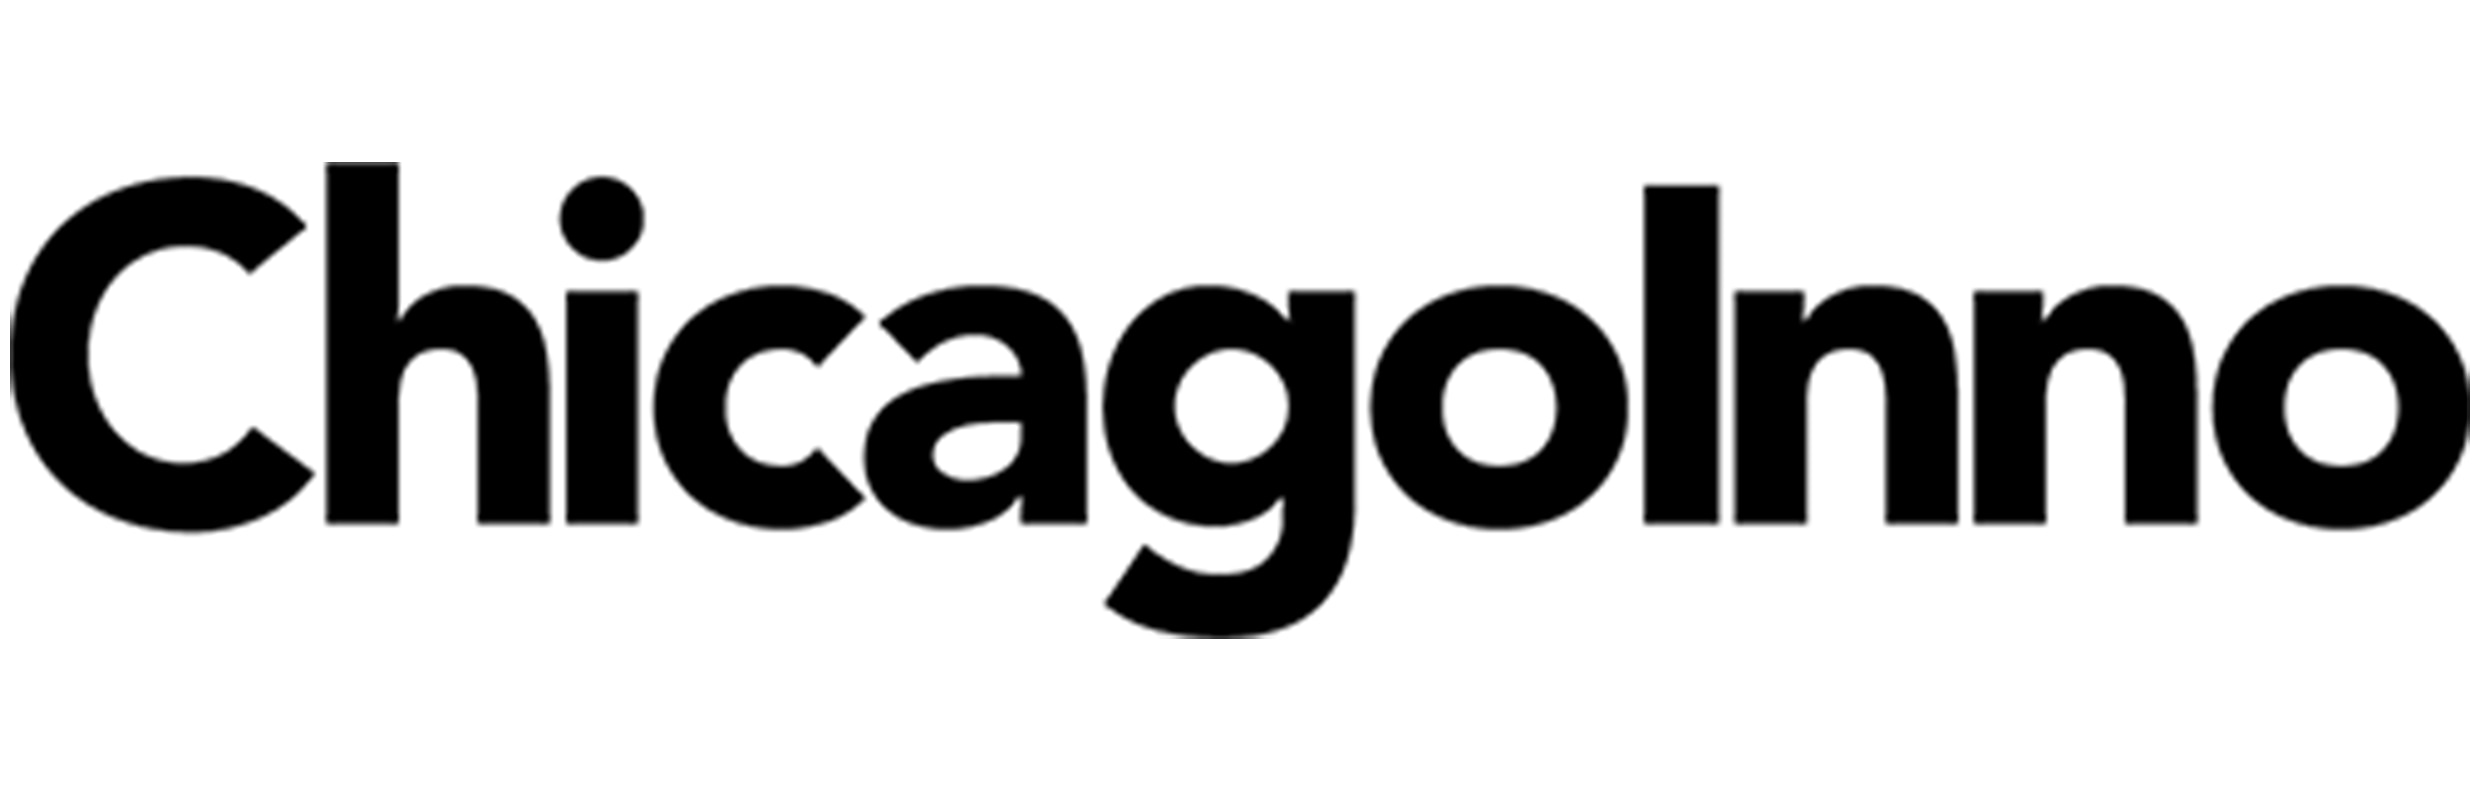 Chicago inno selected